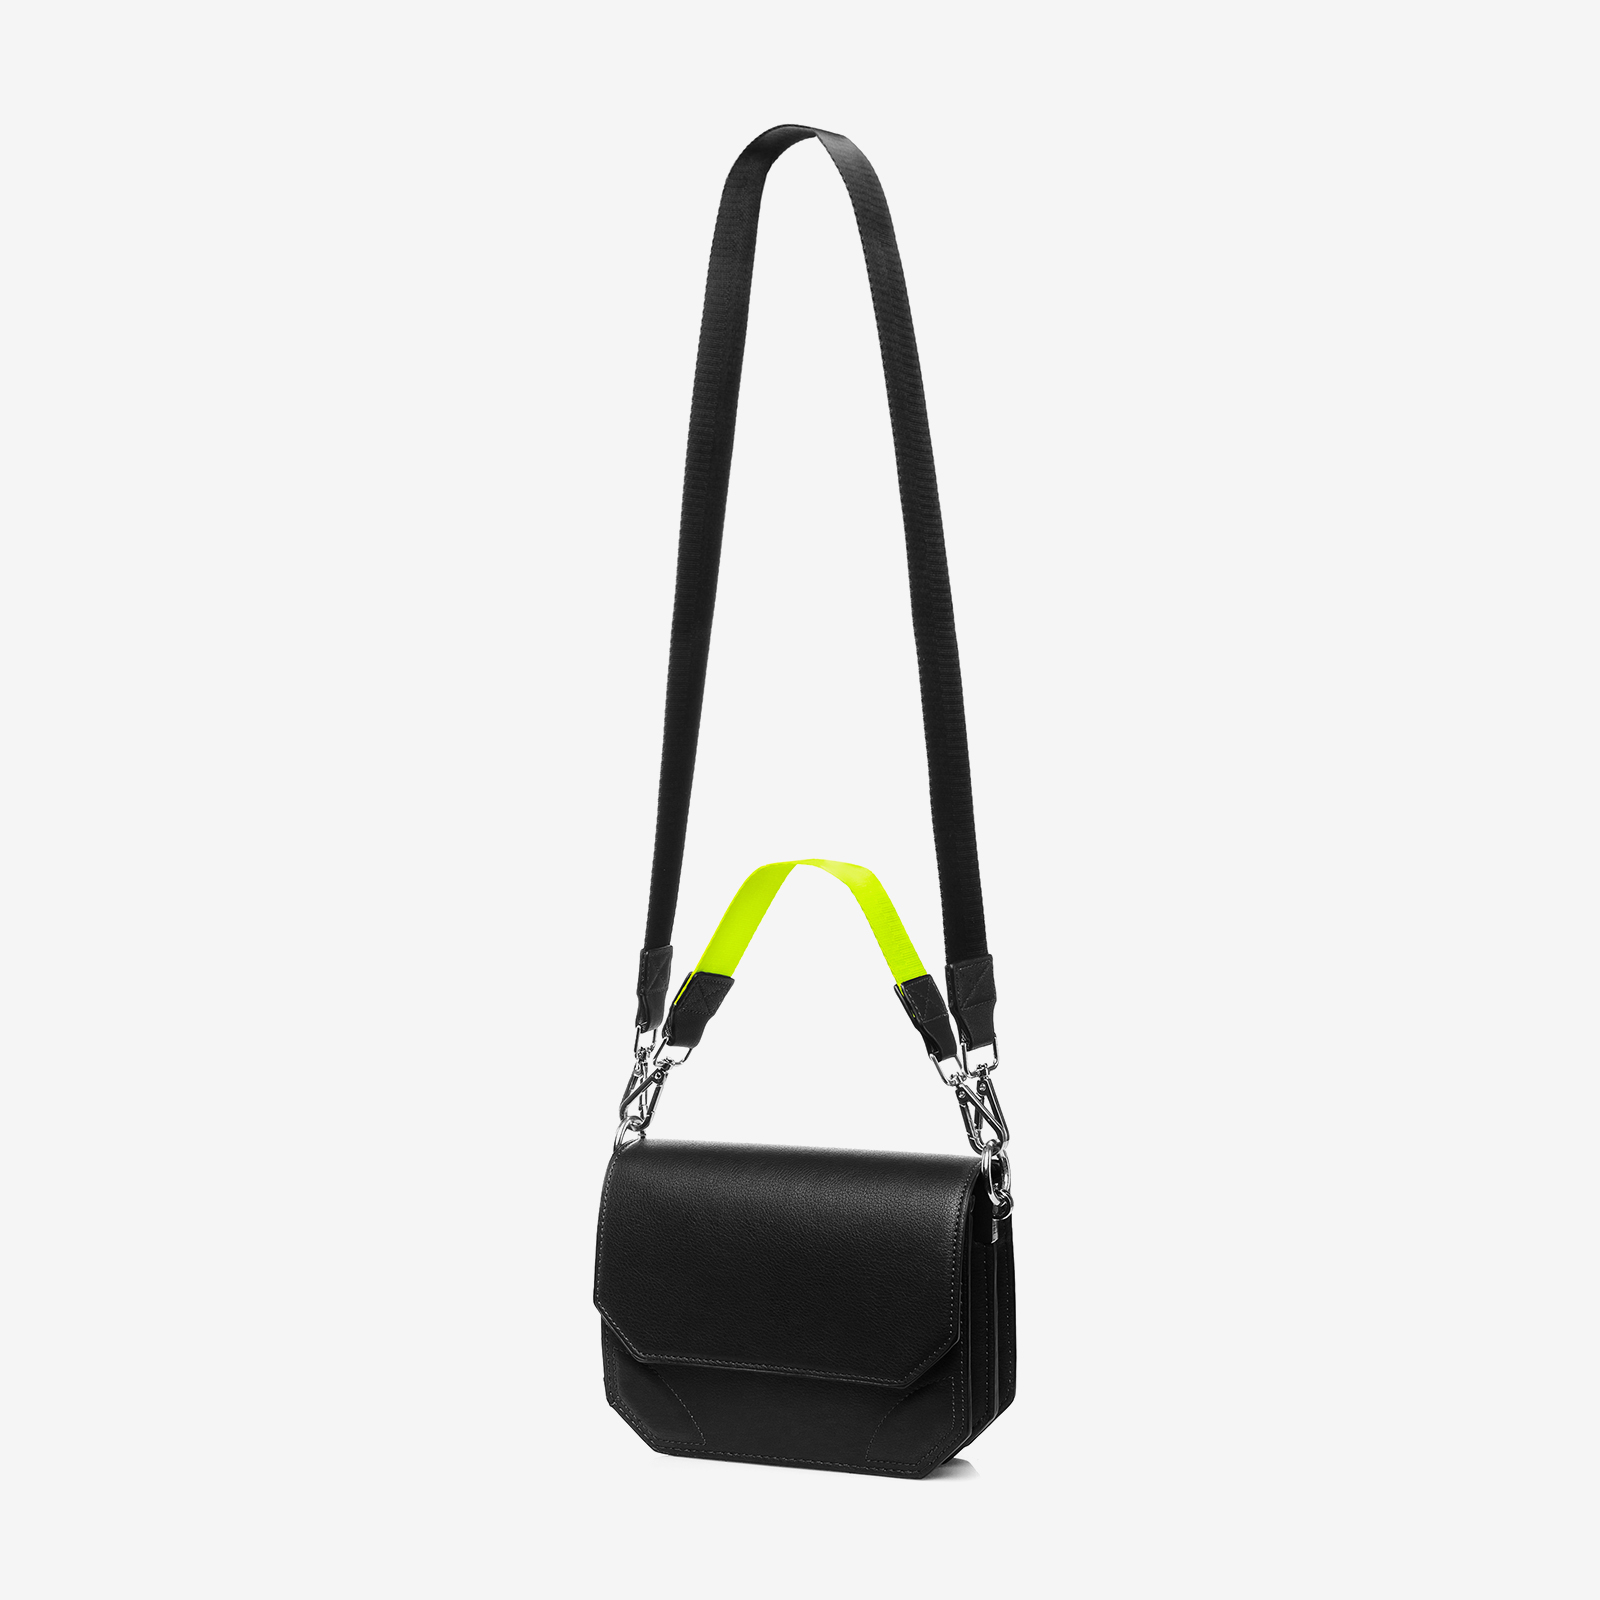 Shoulder bag product photo